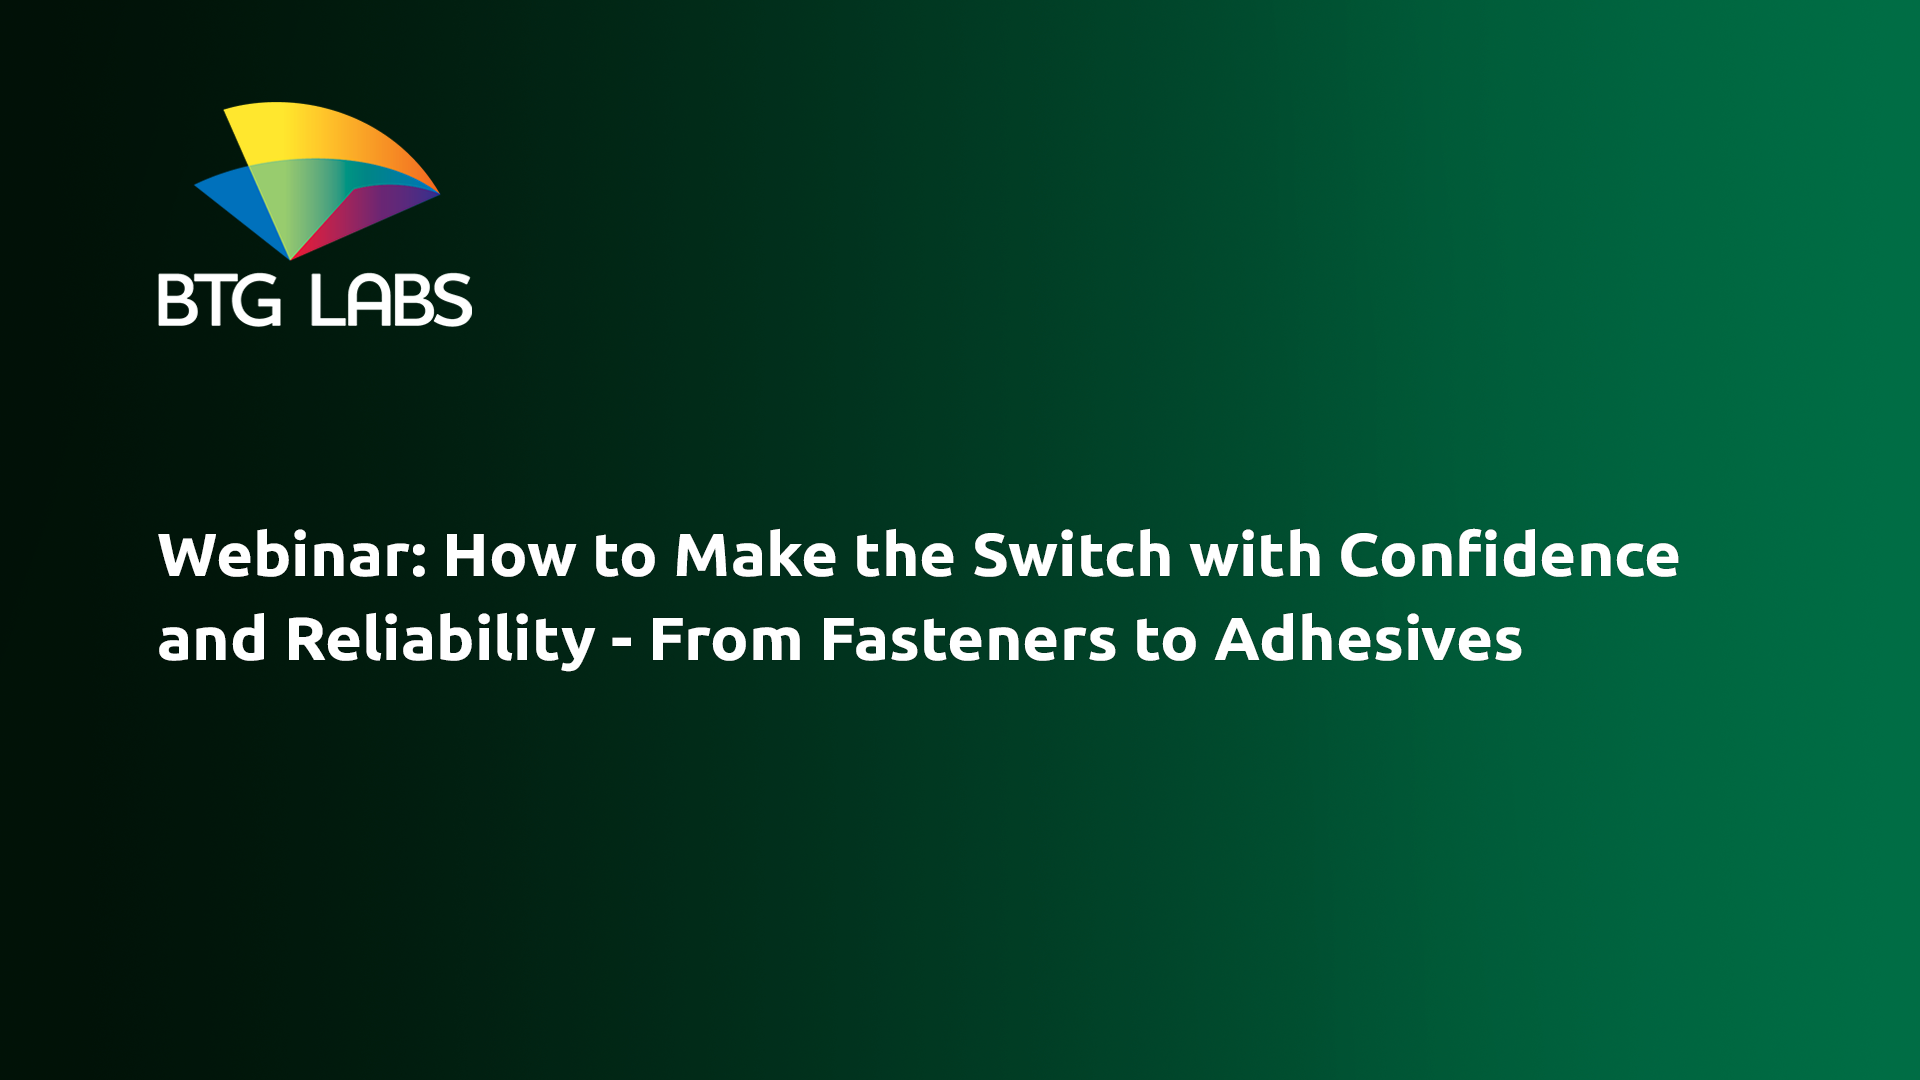 how-to-make-the-switch-with-confidence-and-reliability-from-fasteners-to-adhesives